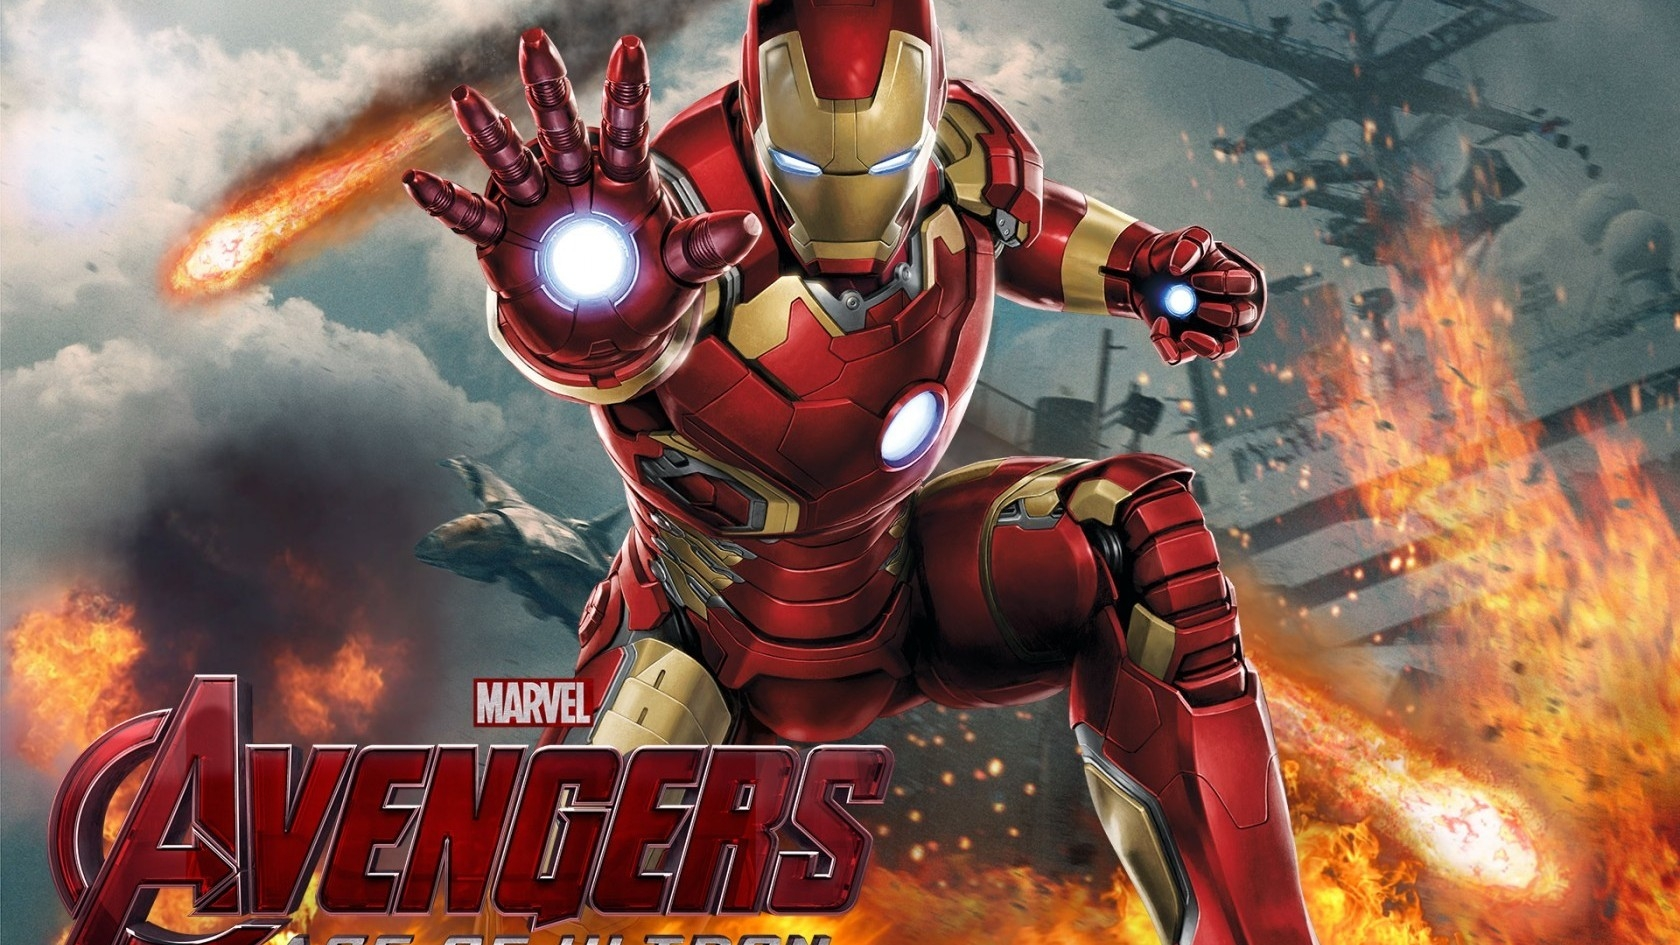 Iron Man The Avengers Movie for 1680 x 945 HDTV resolution